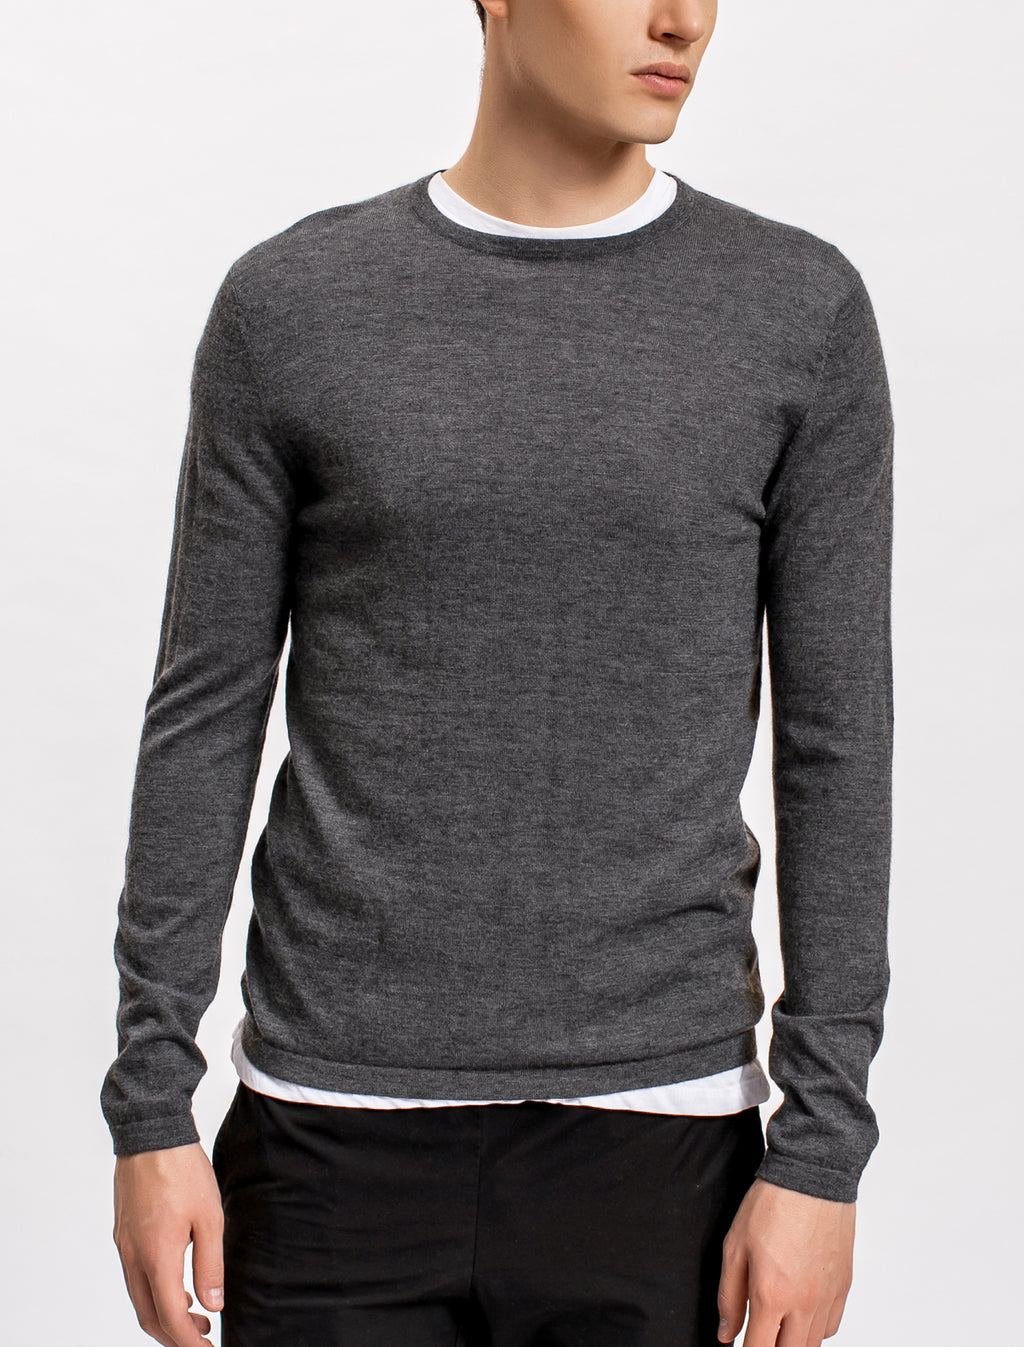 Superfine Cashmere Crewneck Sweater, Charcoal